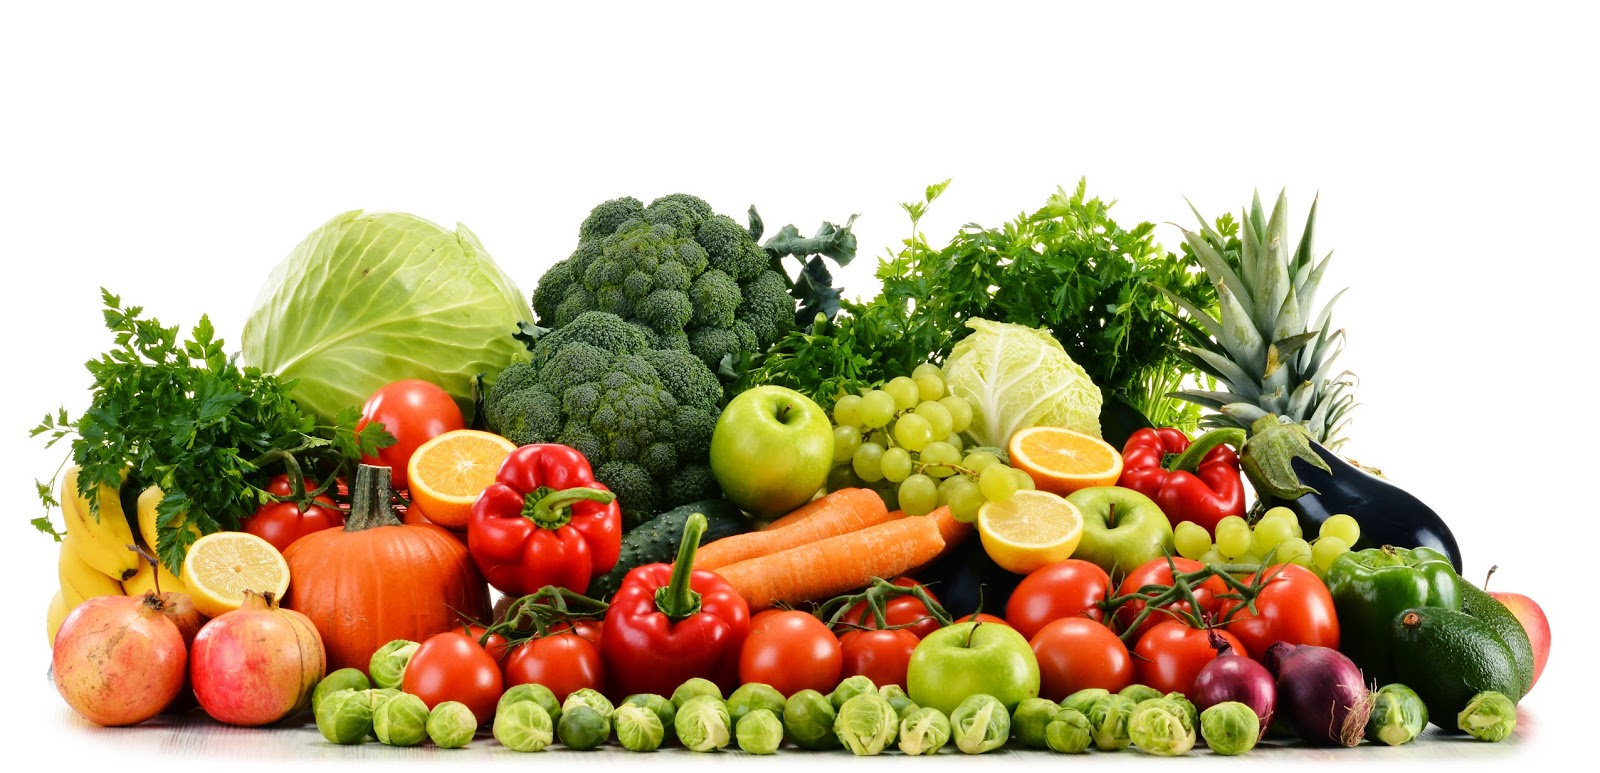 Fresh Vegetables Suppliers: Fresh Vegetable Suppliers in Sri